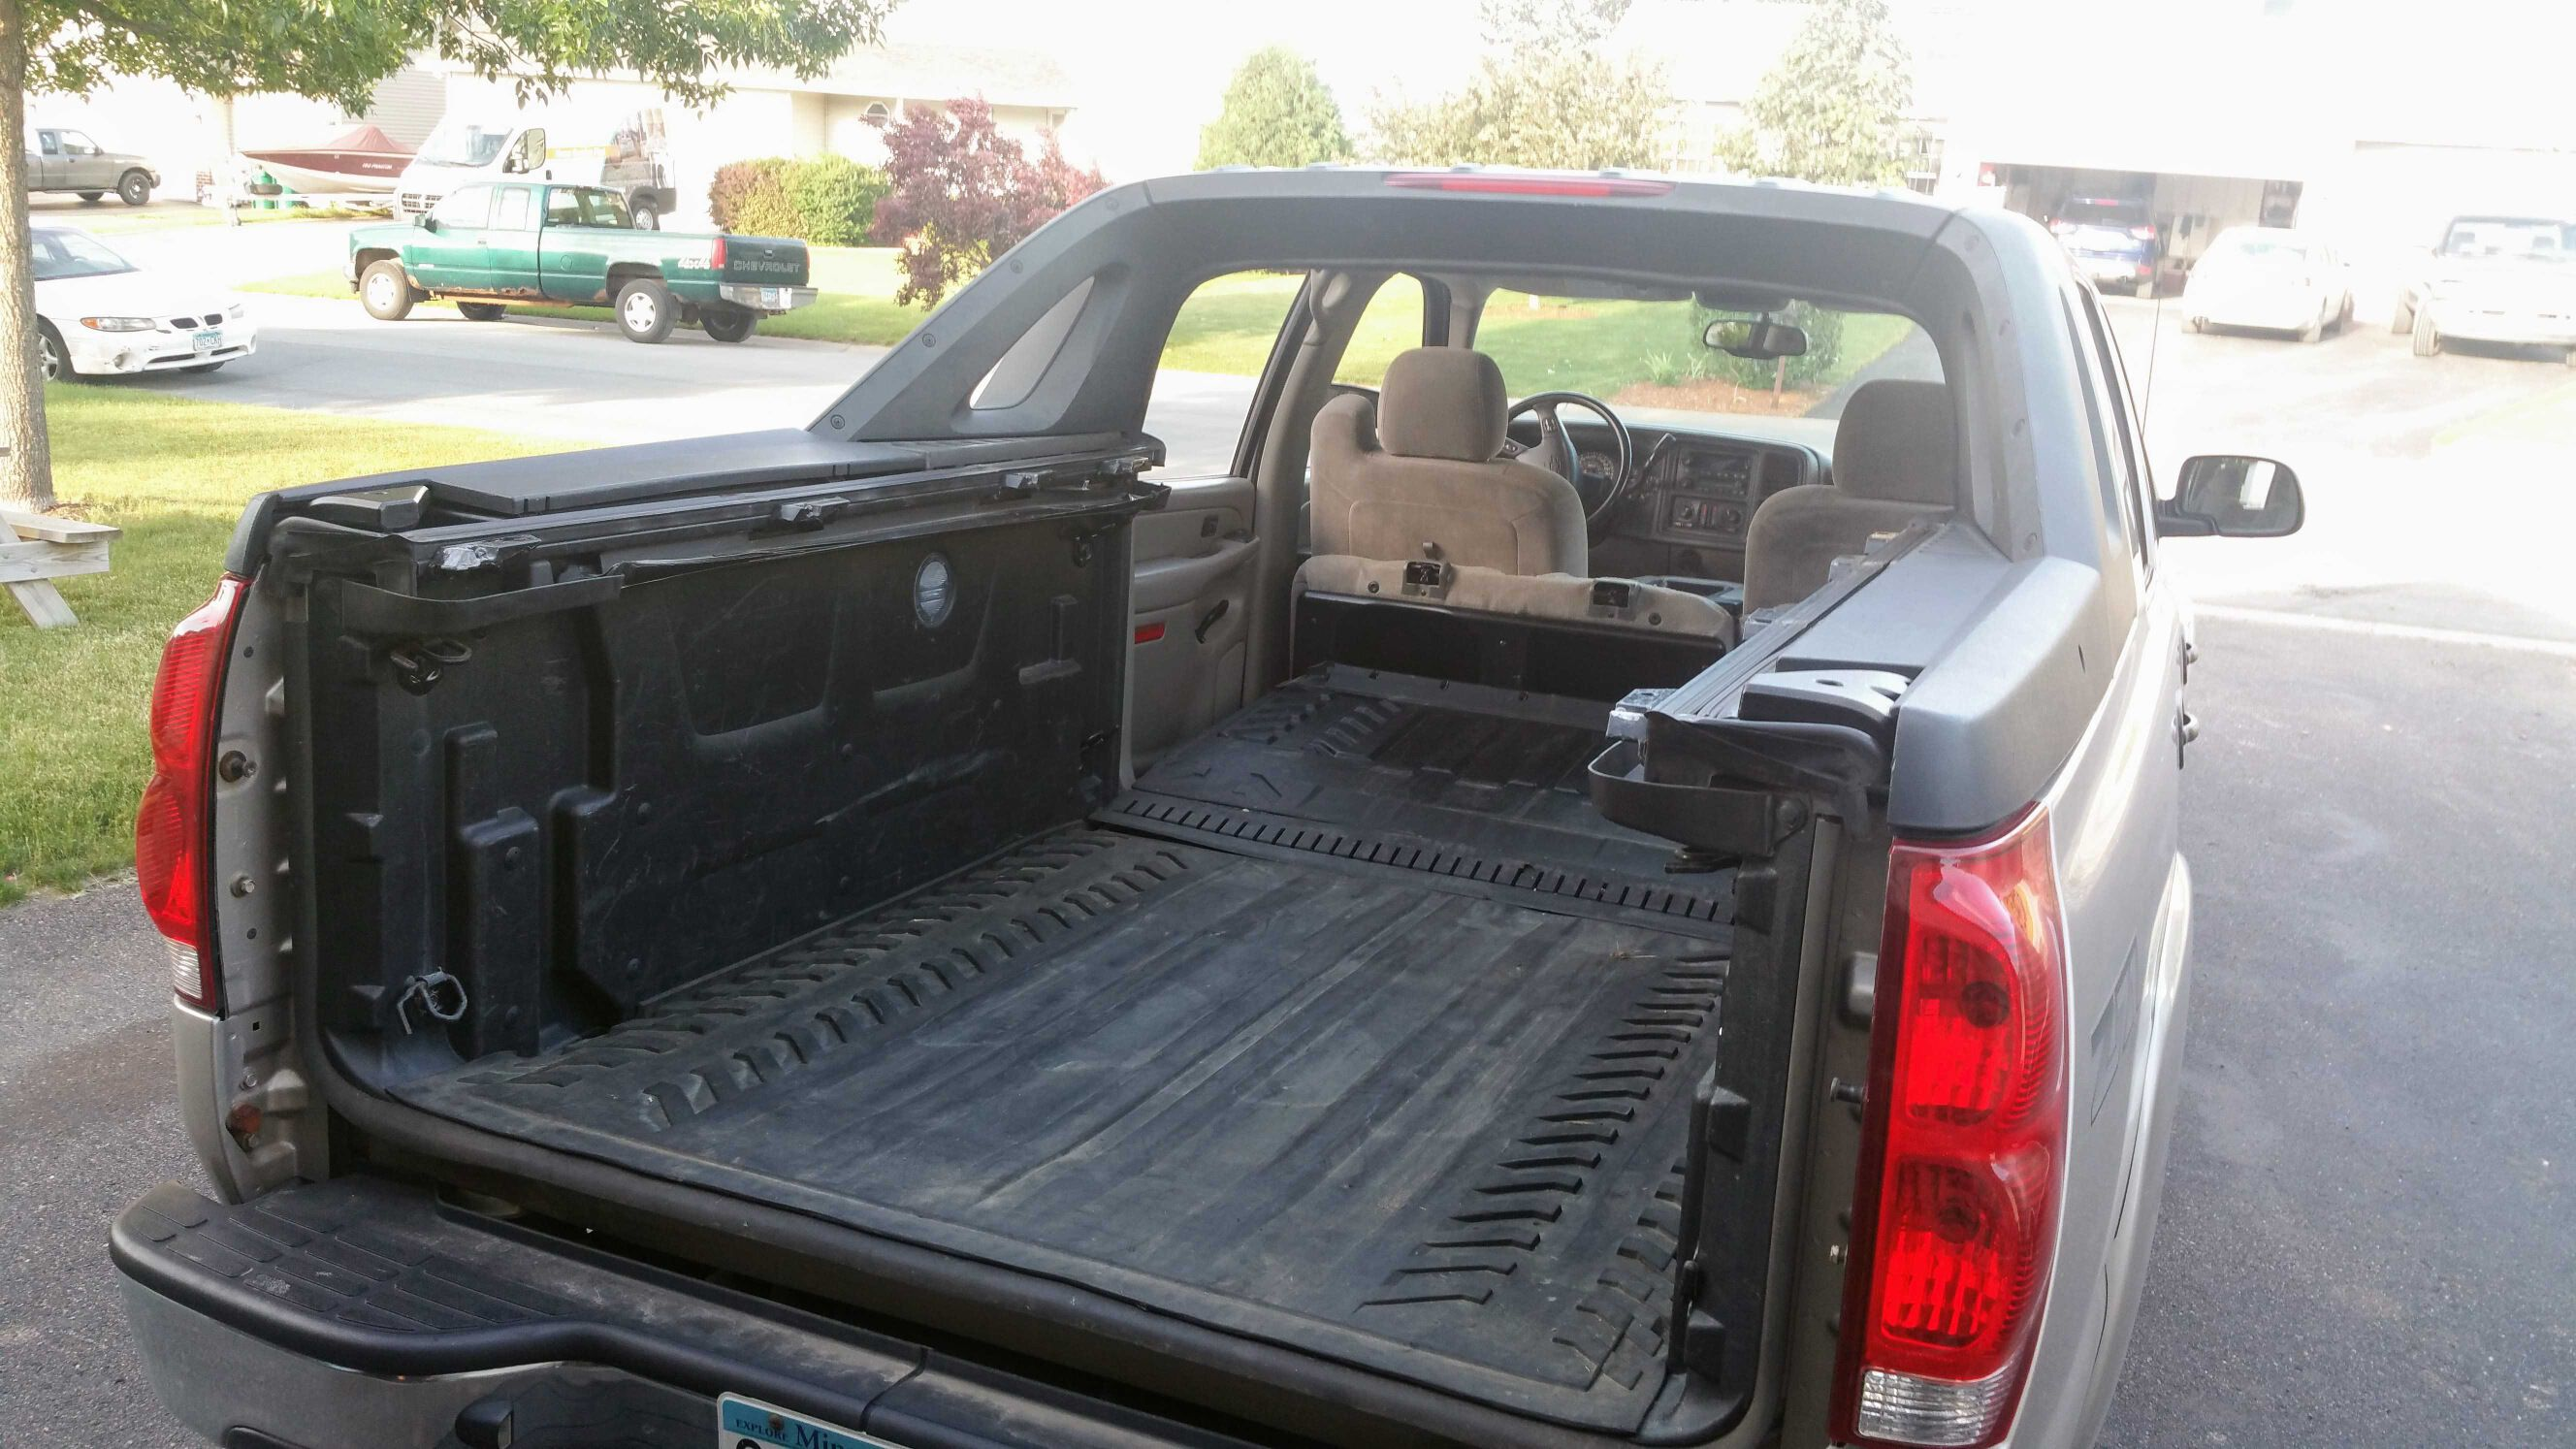 2005 Avalanche With All Panels Removed And Midgate Down Chevy